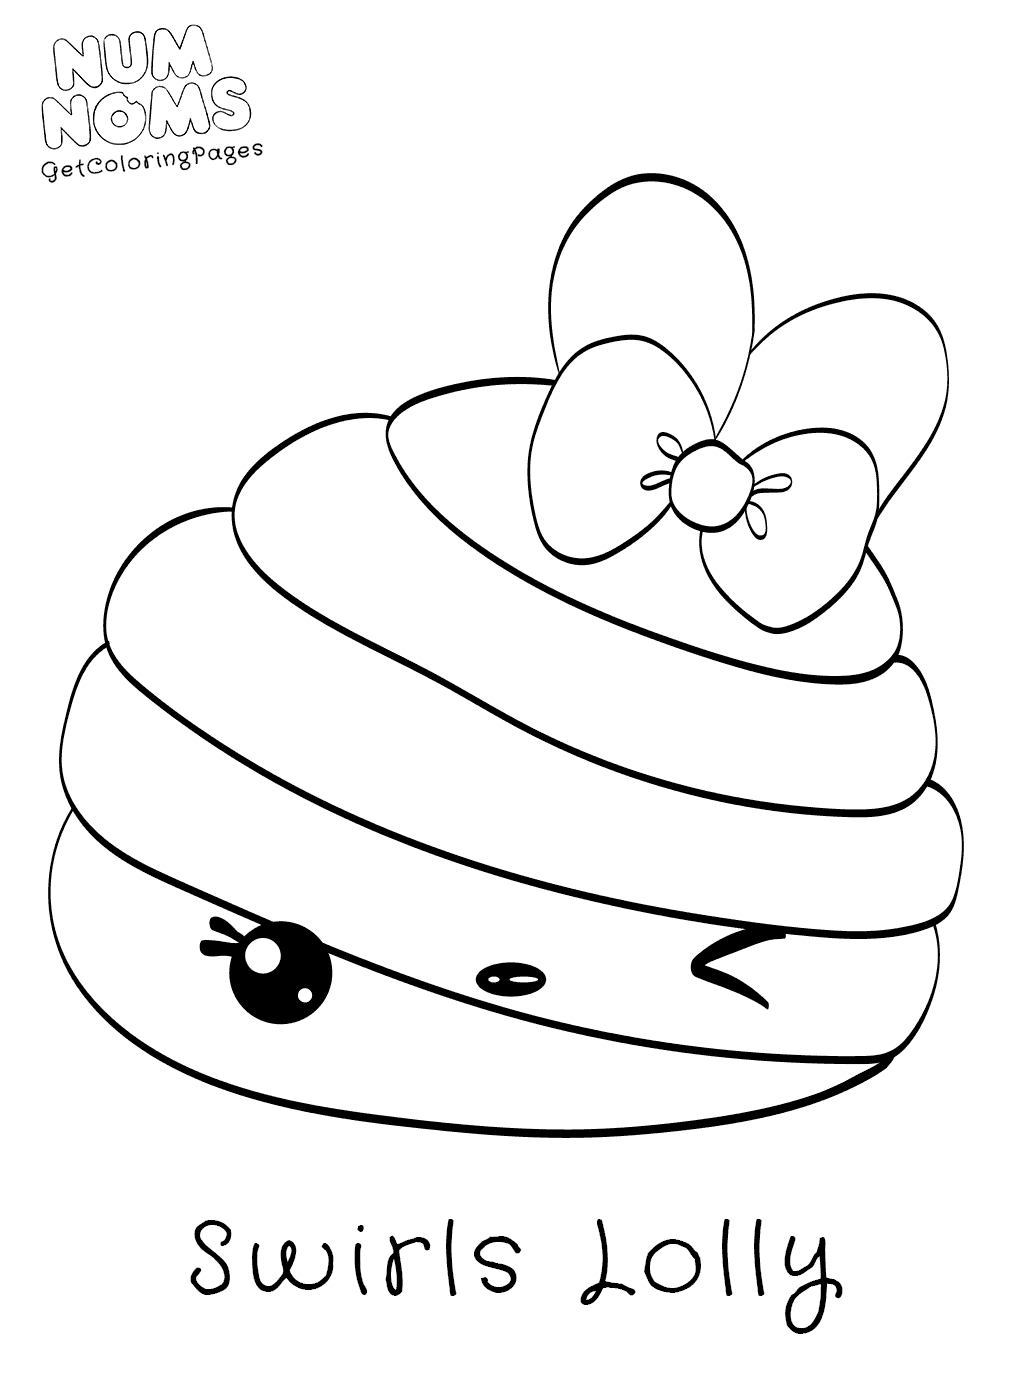 24 Num Noms Coloring Pages Selection | FREE COLORING PAGES ...